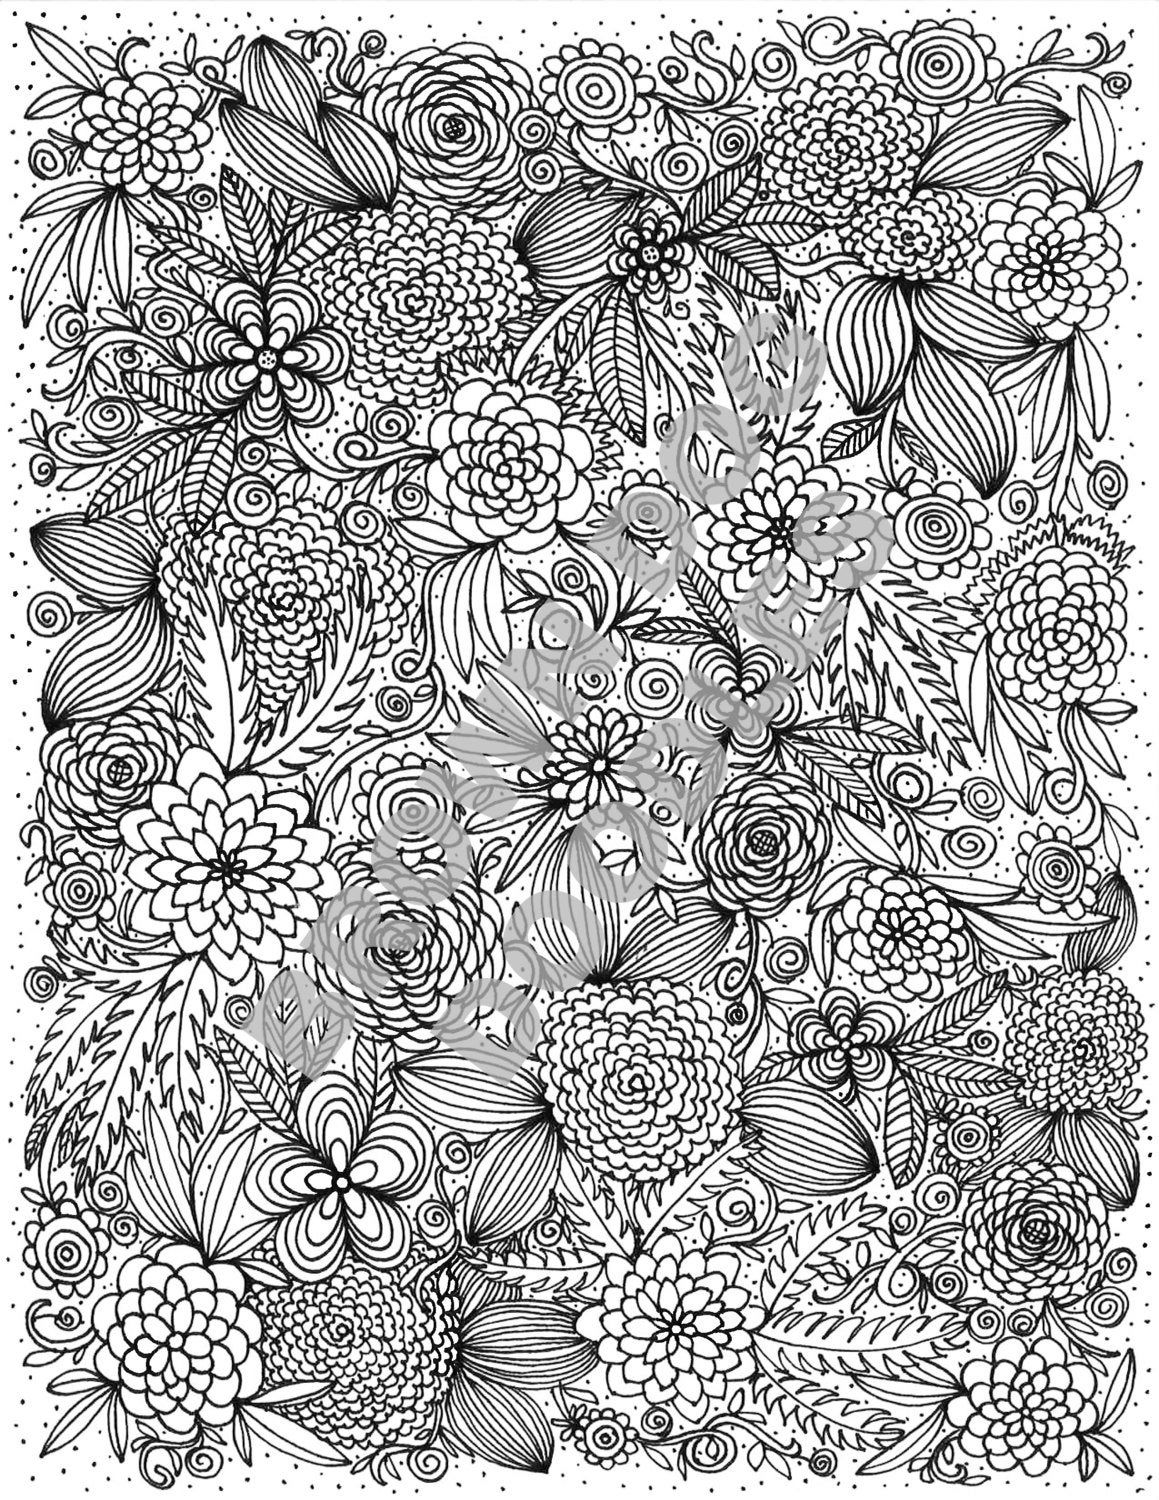 Botanical Coloring Page Etsy Coloring Pages Color Cool Coloring Pages